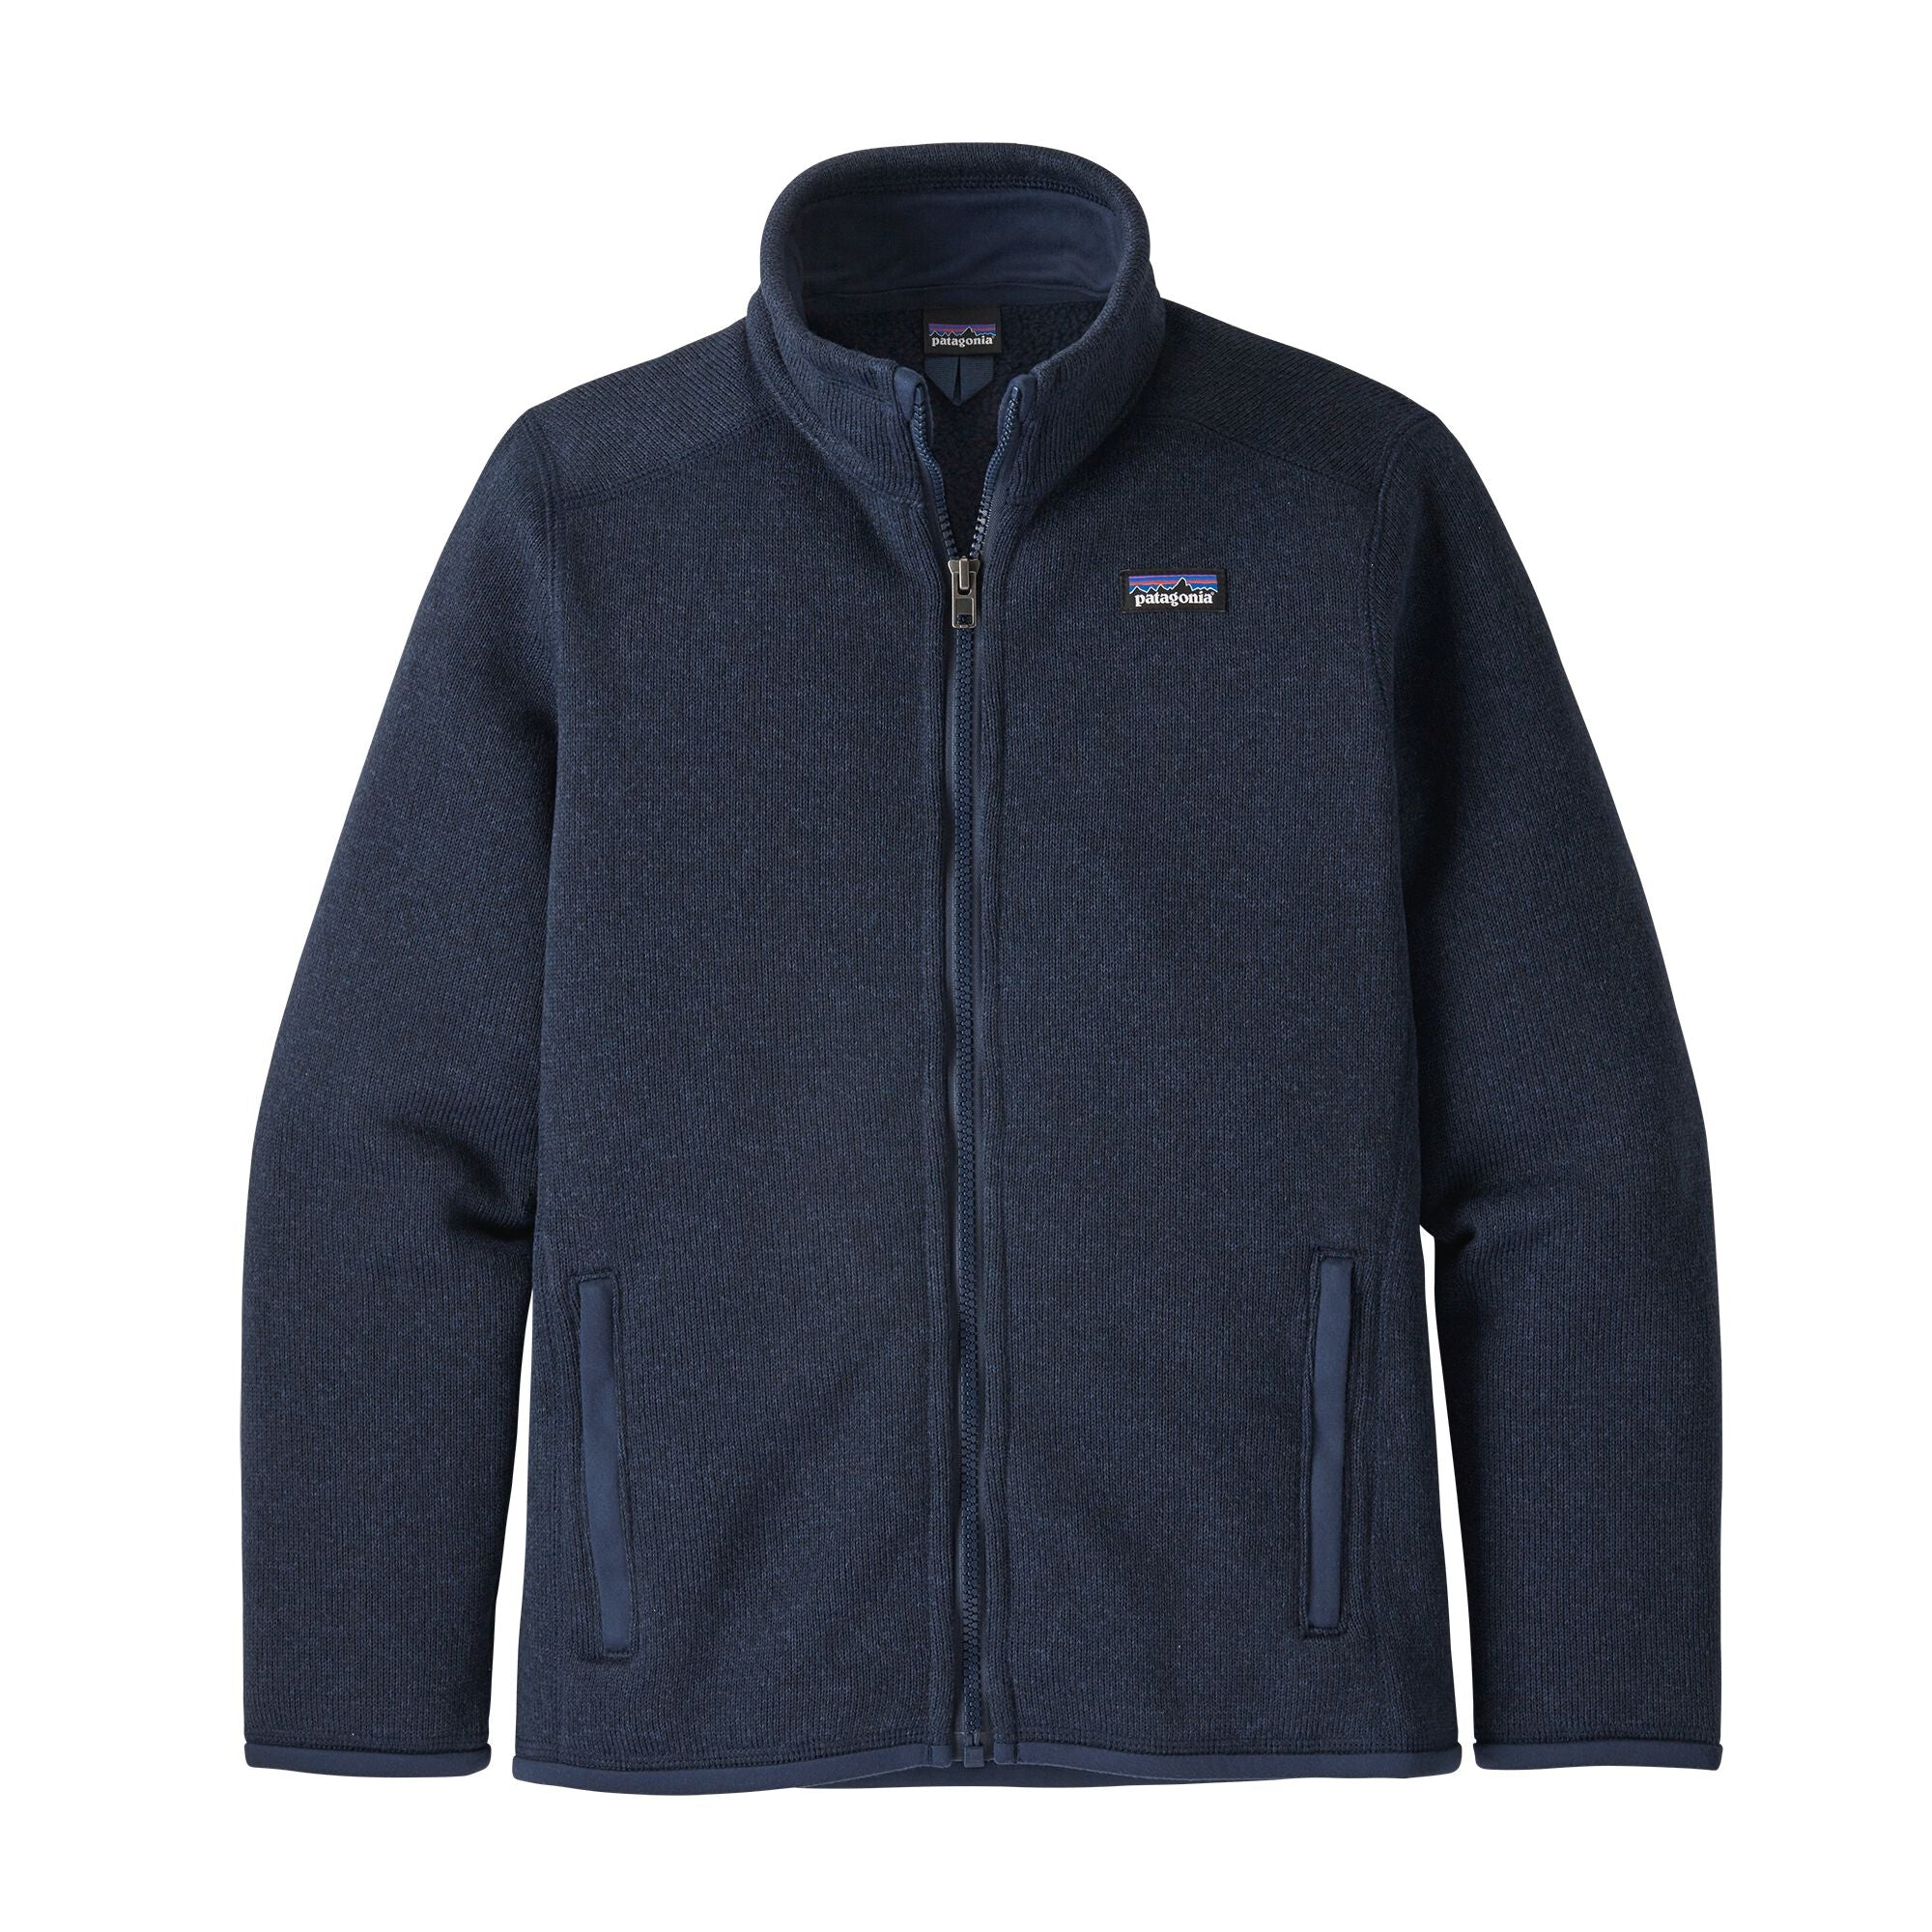 Polar Niño Better Sweater® Jacket Azul Patagonia